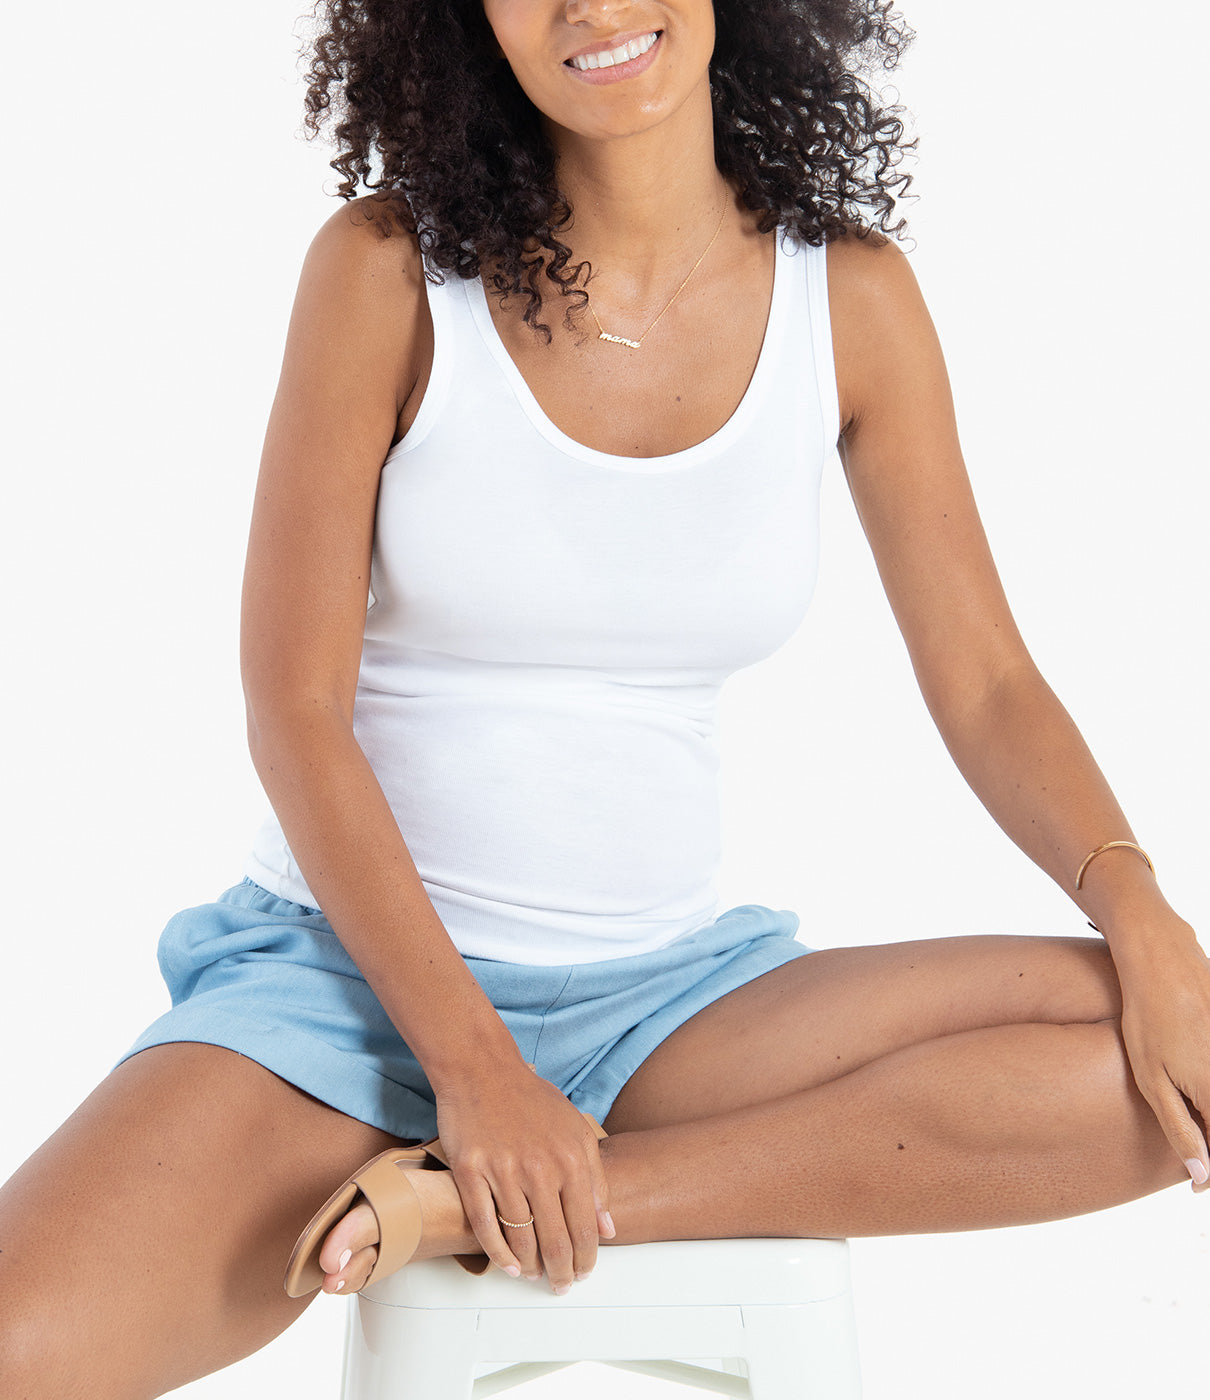 GROWS WITH YOUComfy, under-the-belly elastic waist that fits throughout and after pregnancy.